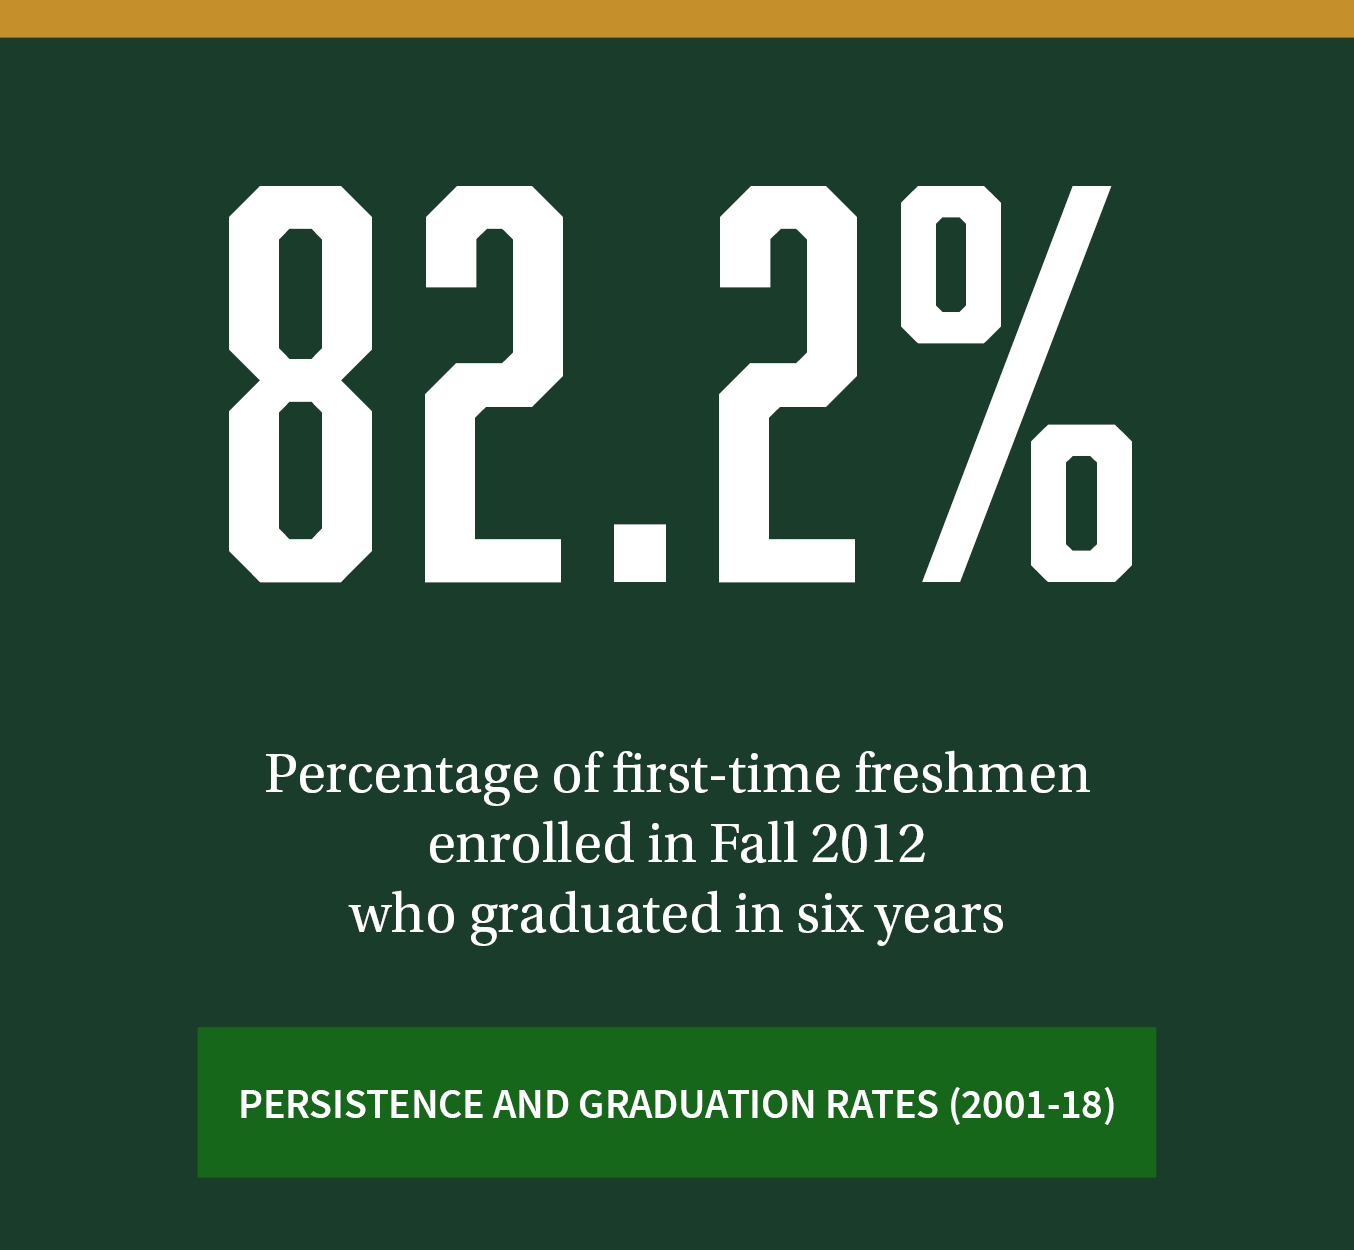 82.2%. Percentage of first-time freshmen enrolled in Fall 2012 who graduated in six years. Click to review more persistence and graduation rates (2001-18).